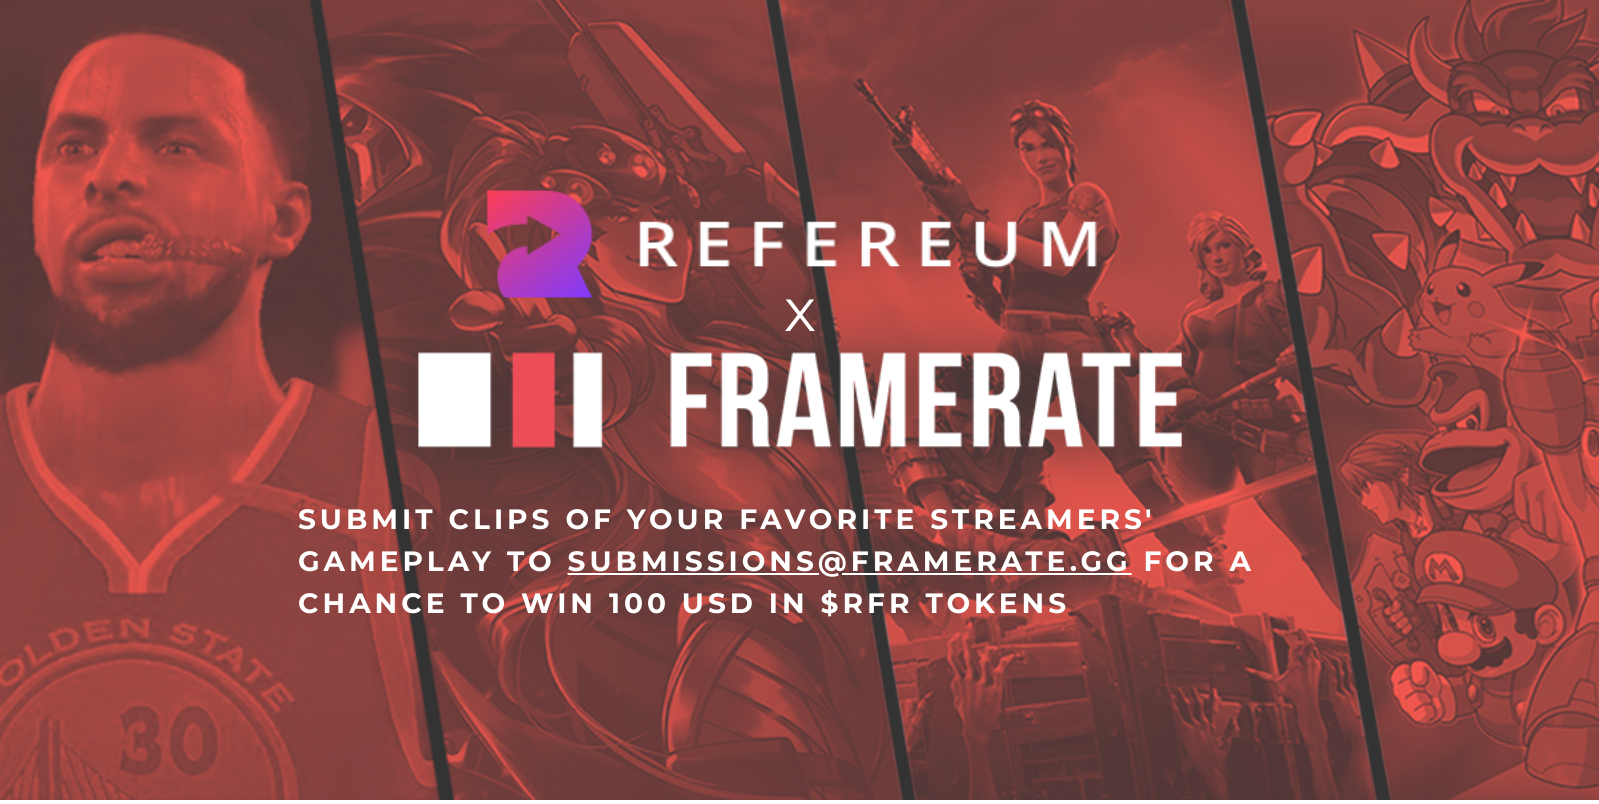 Gamers! Showcase Your Best Plays With Refereum and Framerate